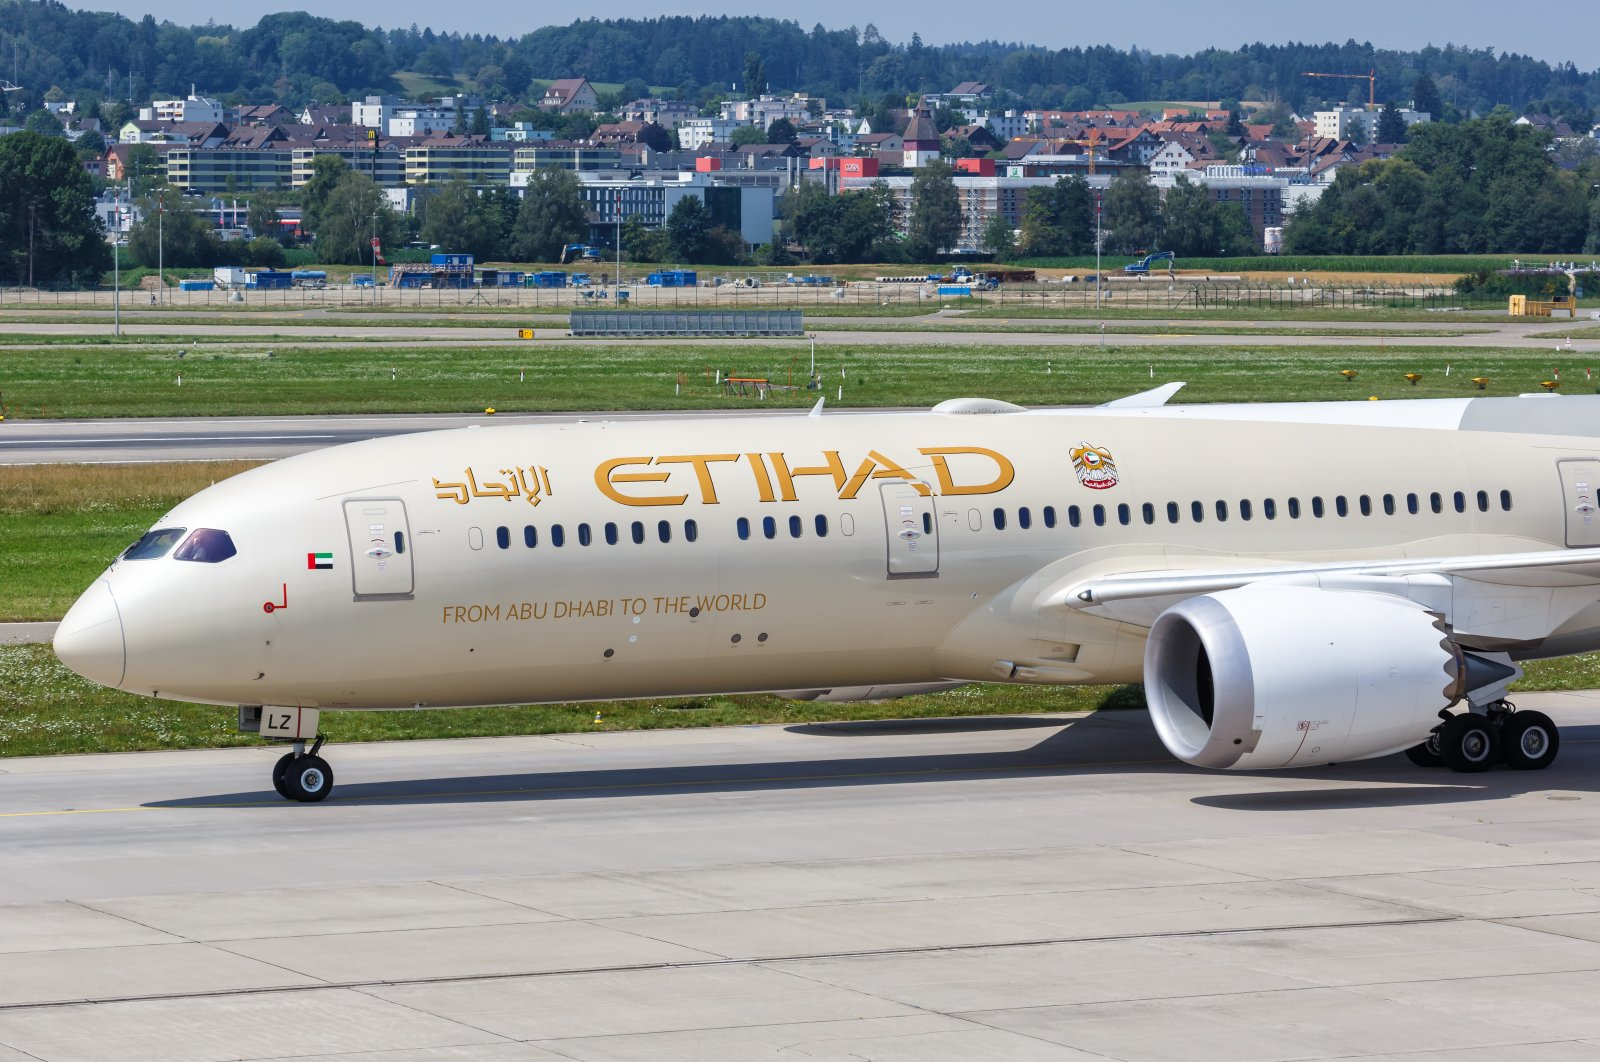 An Etihad Boeing 787-9 Dreamliner aircraft waits on the tarmac at Zurich Airport in Switzerland, July 22, 2020. (Shutterstock Photo)